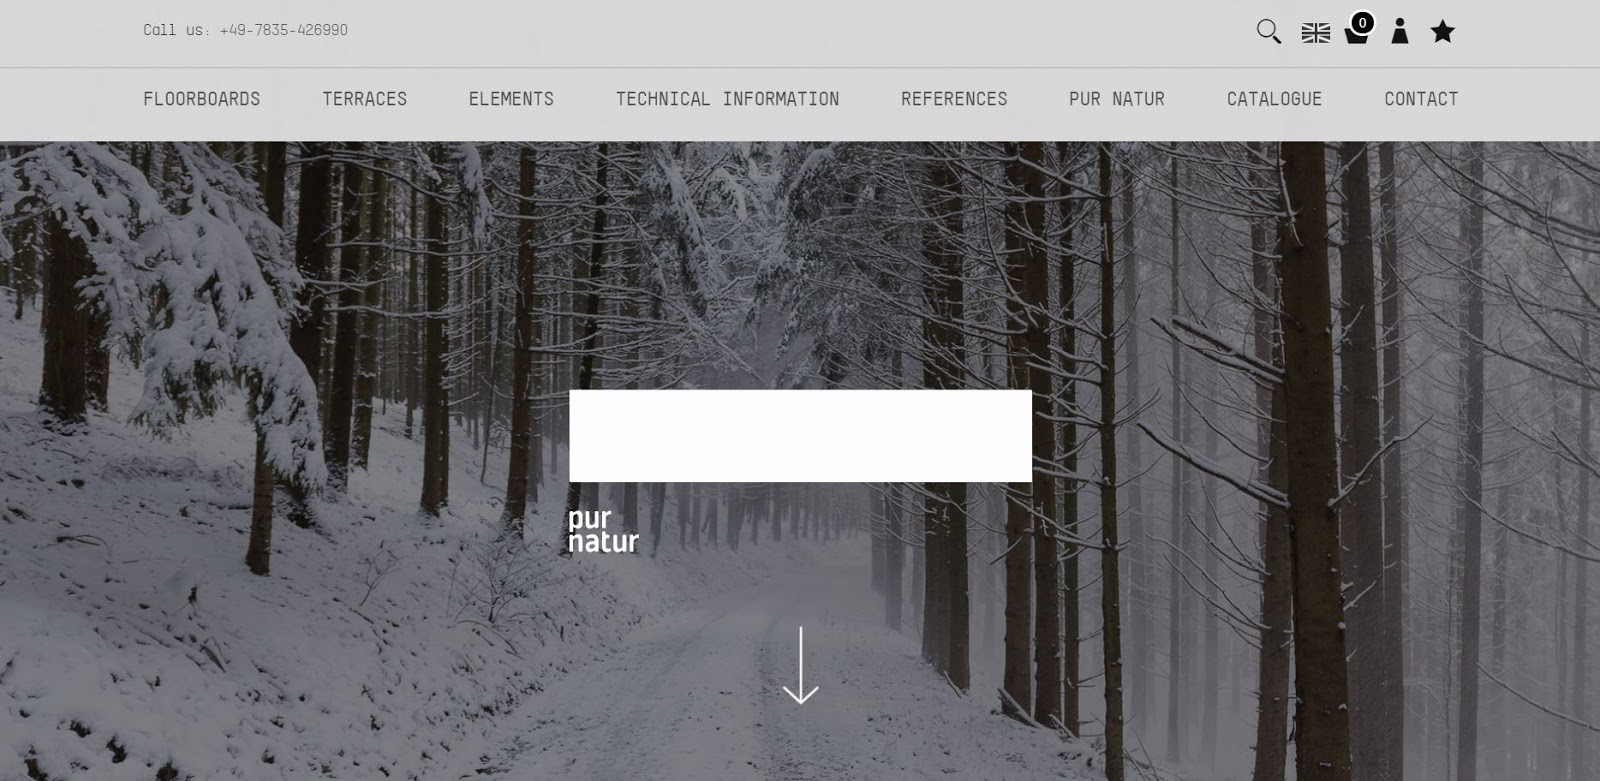 twitter bootstrap examples-purnatur